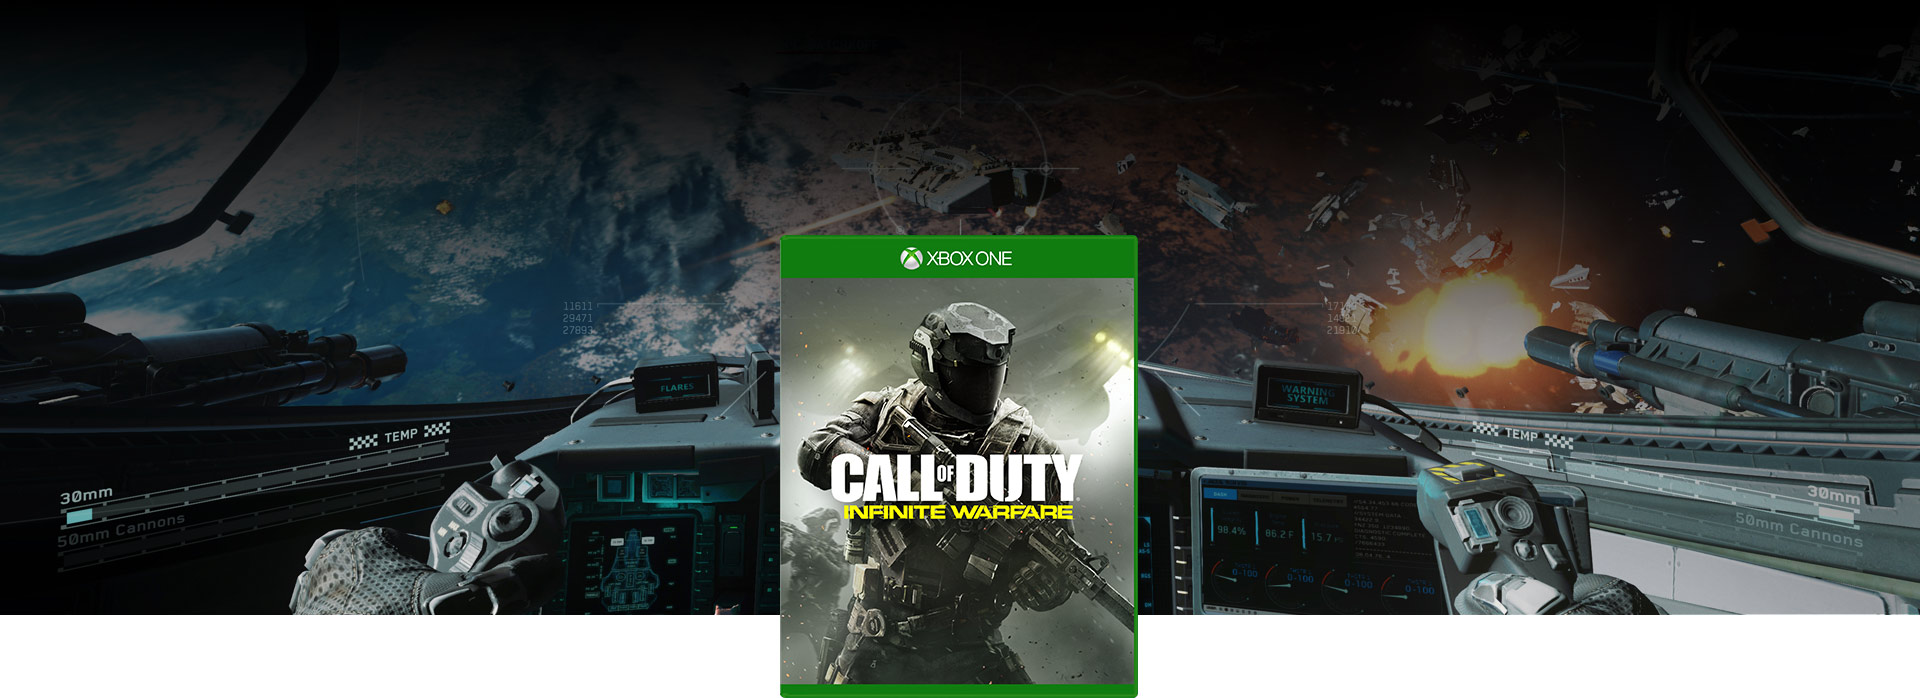 Call of Duty Infinite Warfare 包裝圖